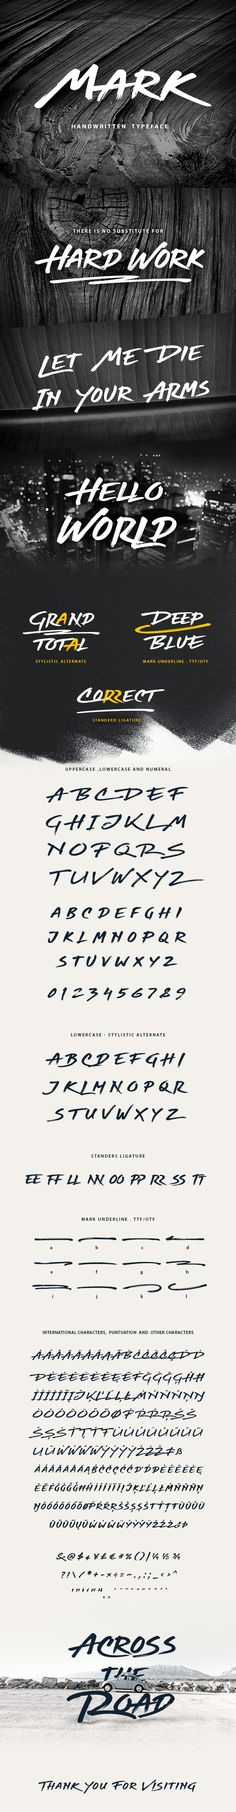 Mark Handwritten Graffiti Font